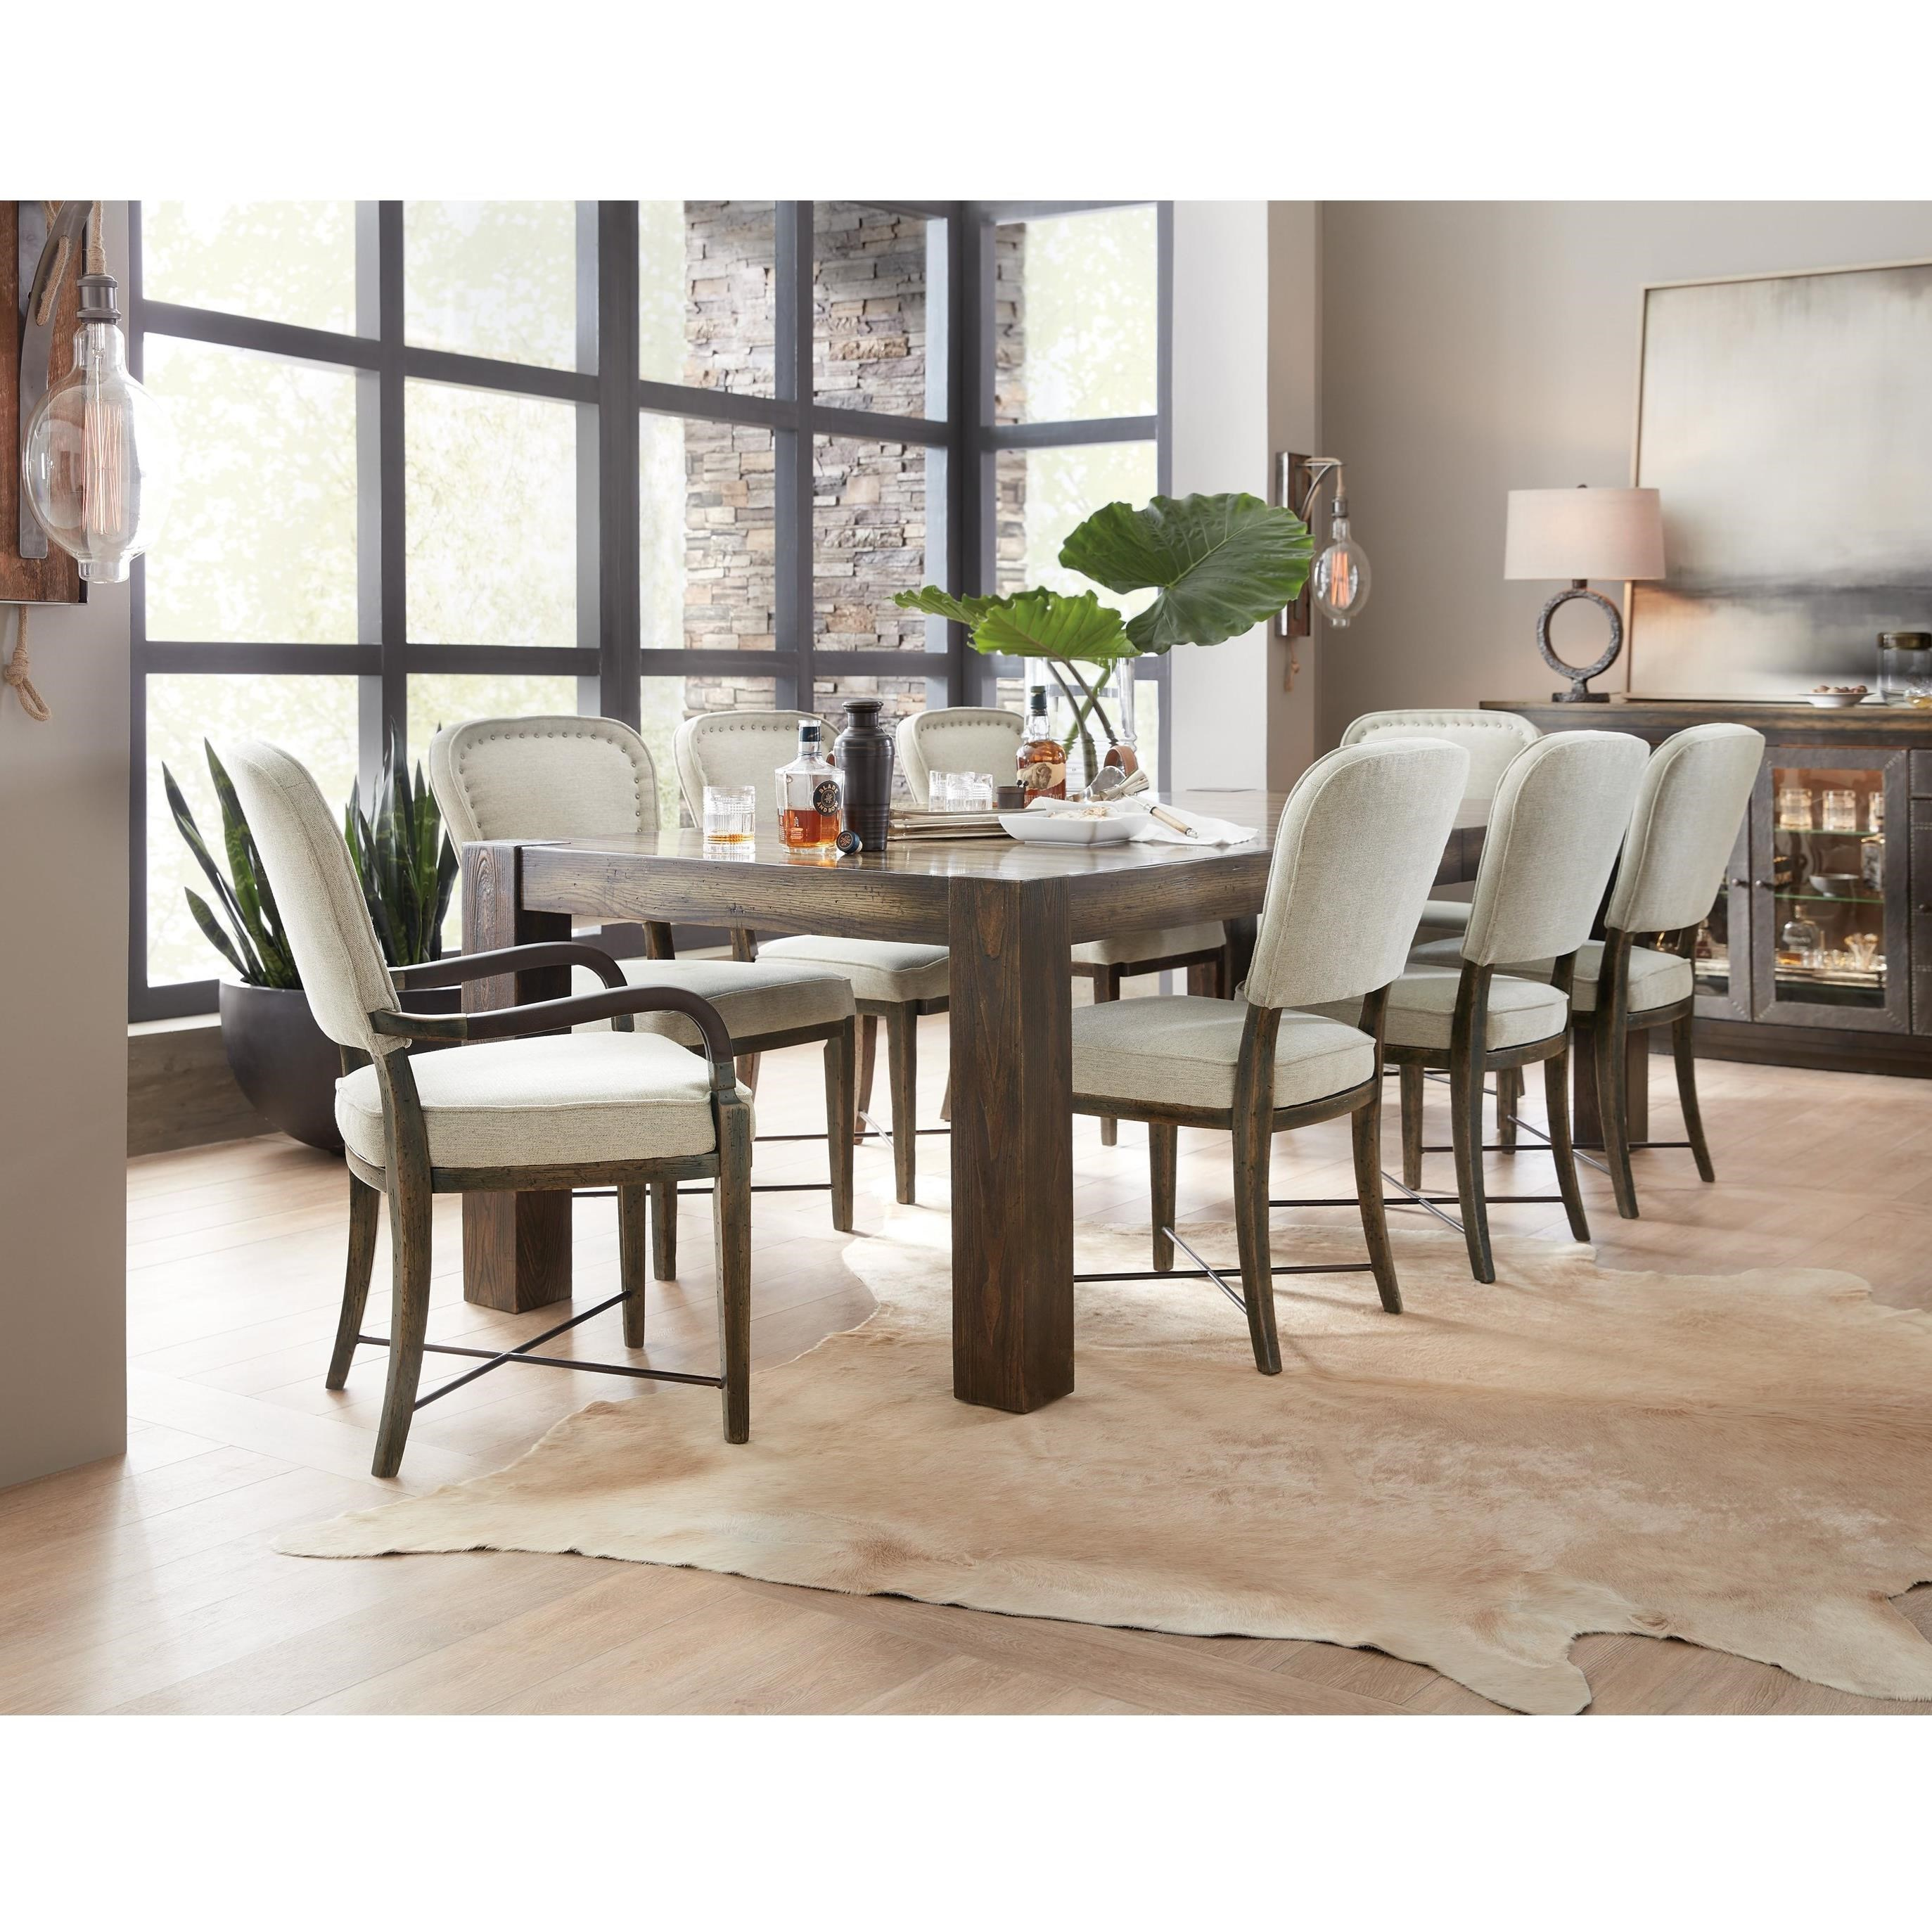 American Life-Crafted 9 Piece Table and Chair Set by Hooker Furniture at Stoney Creek Furniture